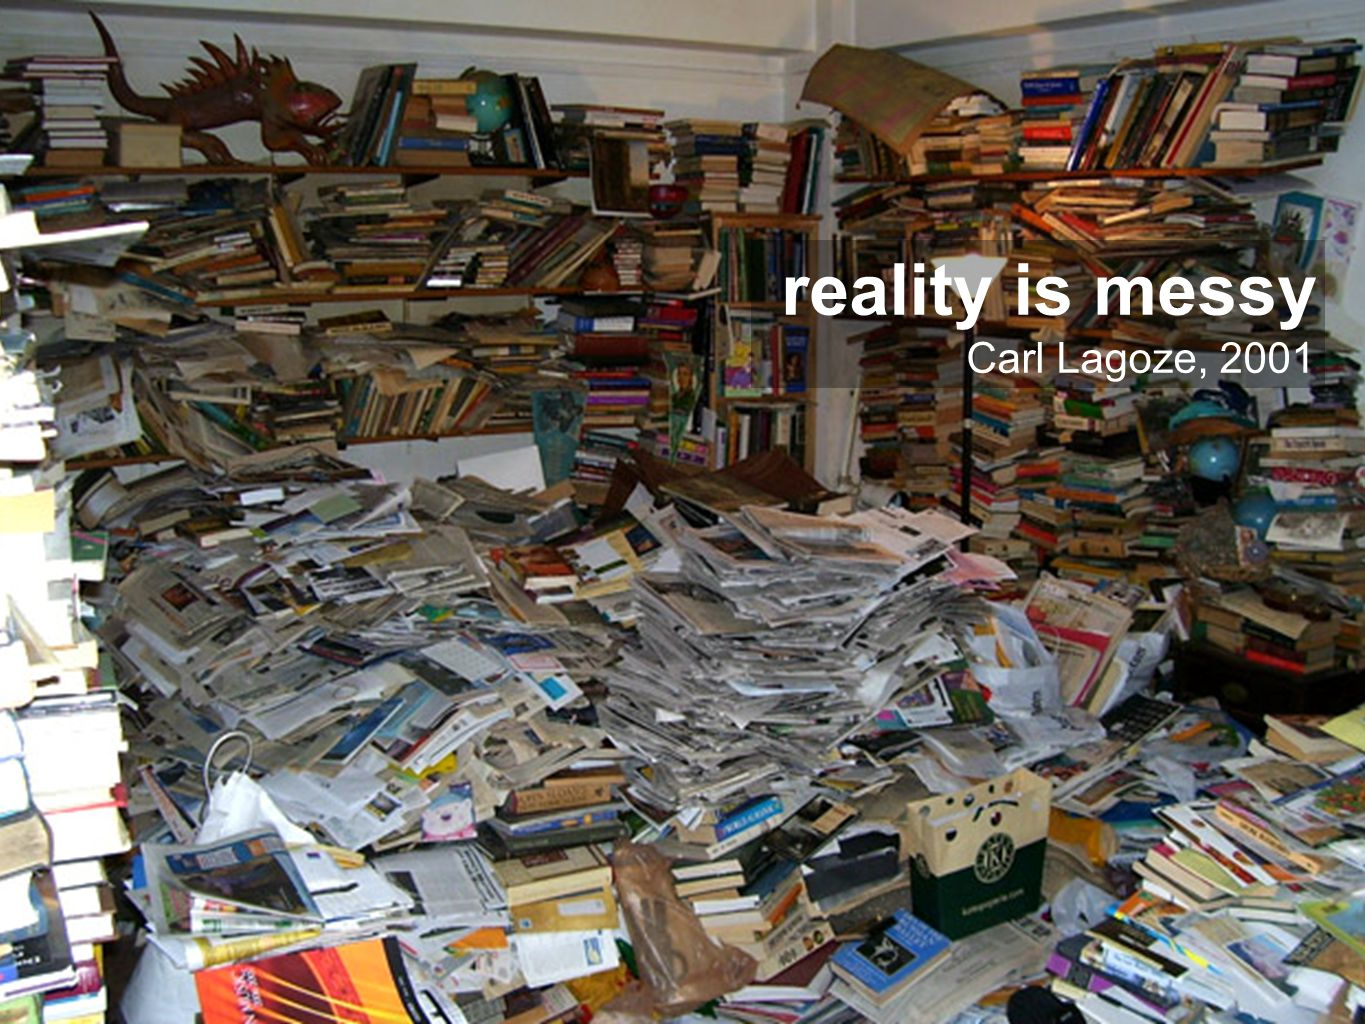 1. REALITY IS MESSY reality is messy Carl Lagoze, 2001